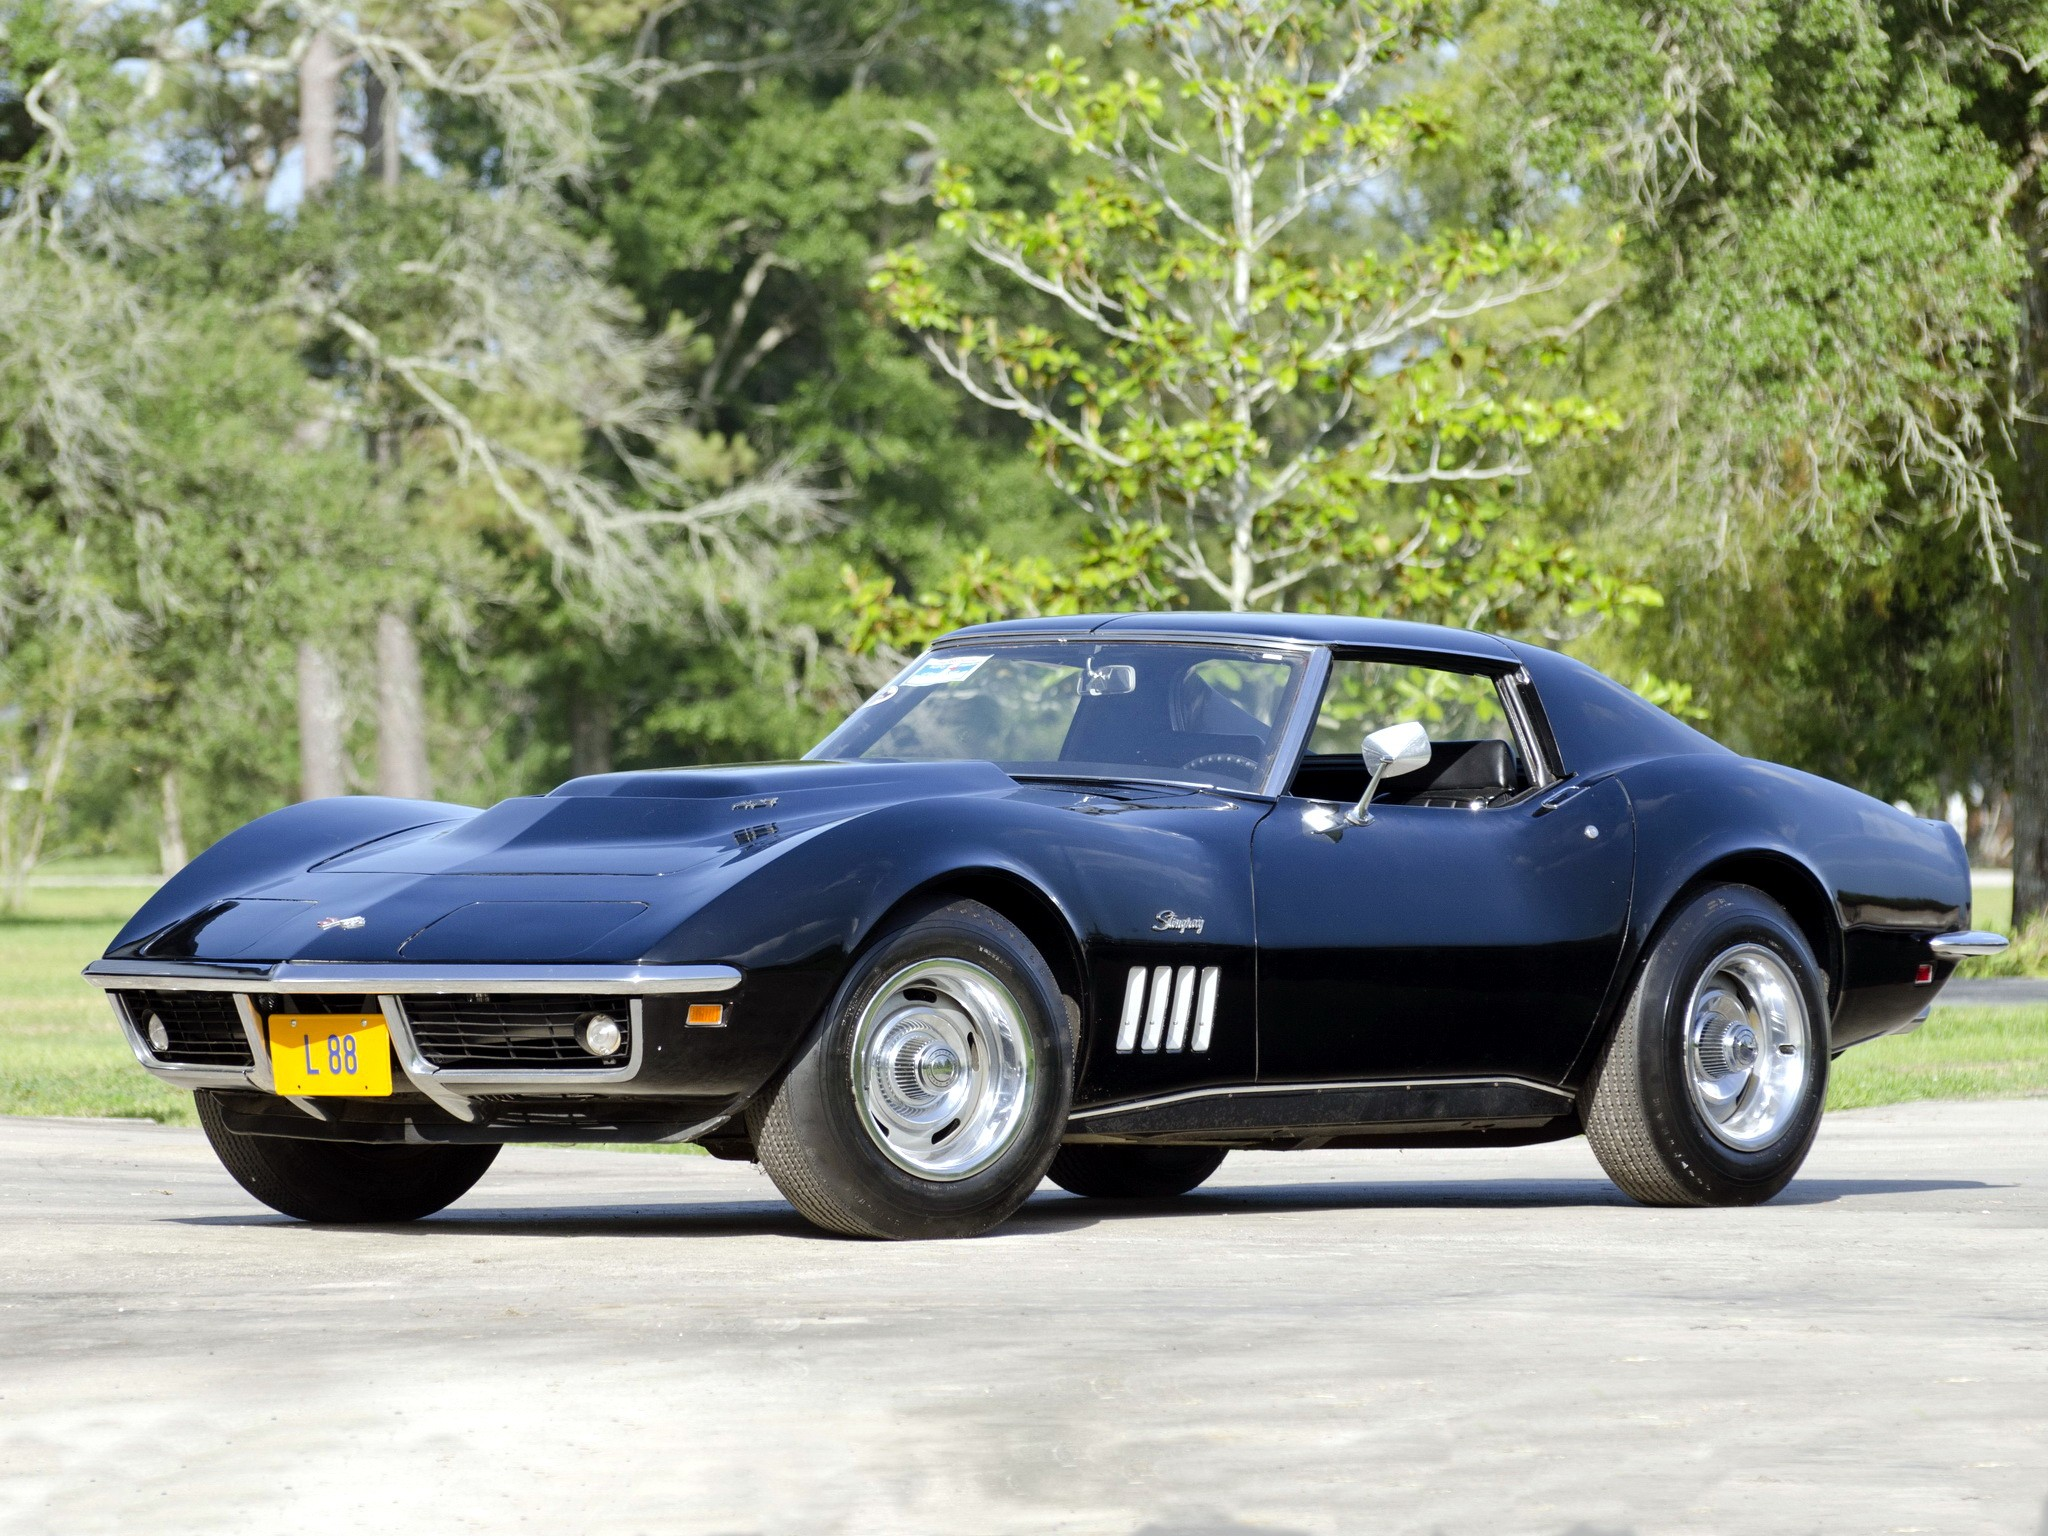 427 Corvette Stingray Wallpaper